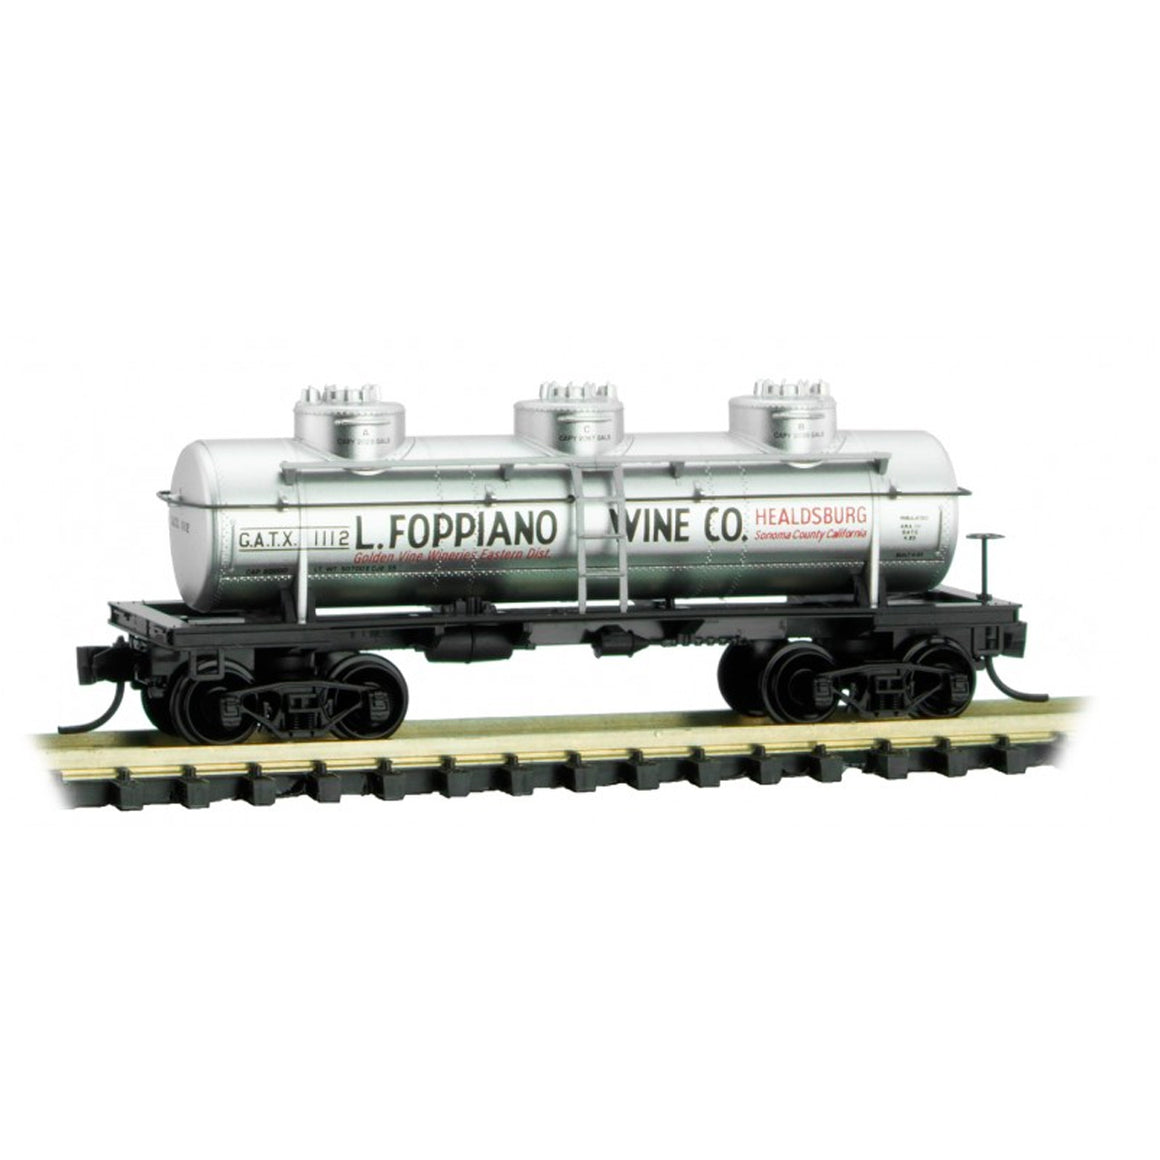 N Scale: 3-Dome Tank Car - L. Foppiano Wine Co.